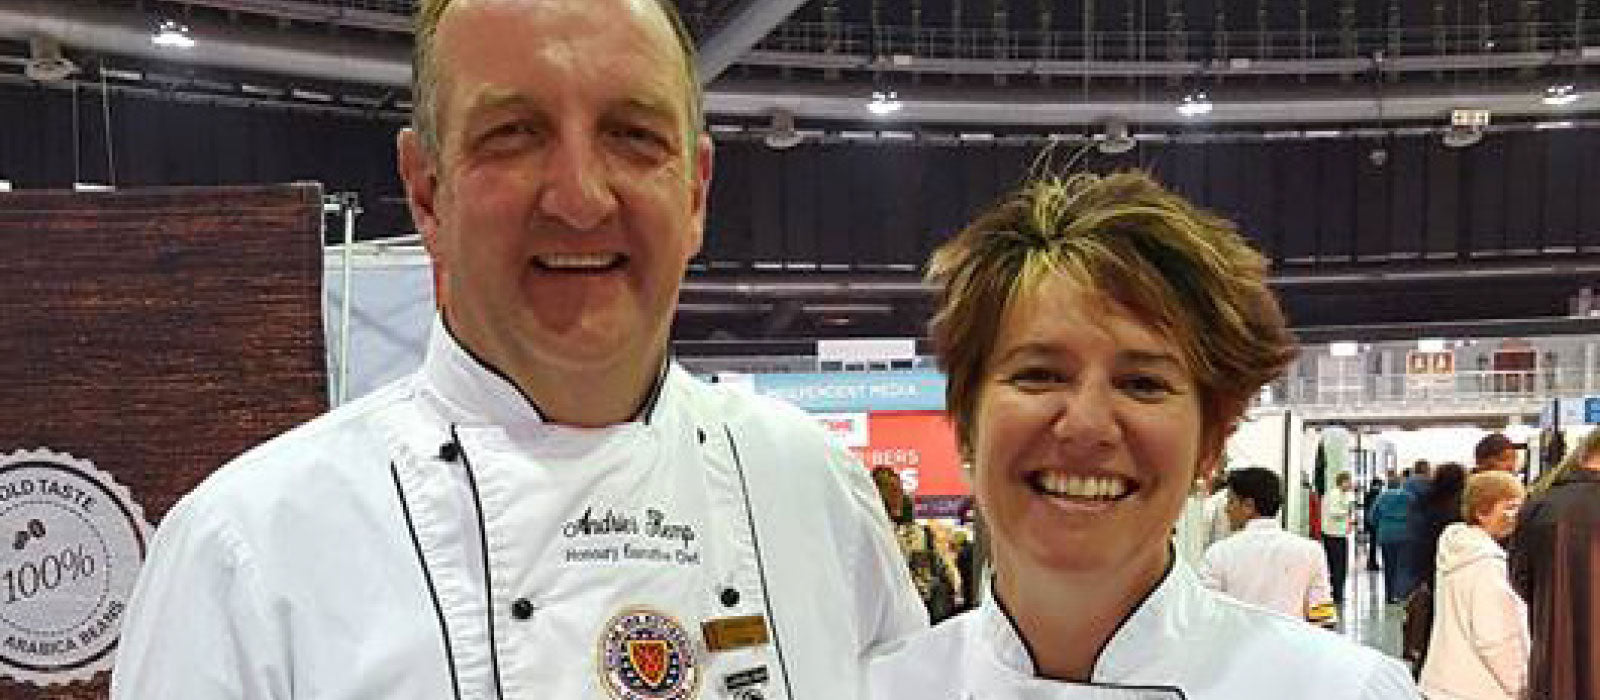 Good Food and Wine Show with Andries Kemp of Rolkem